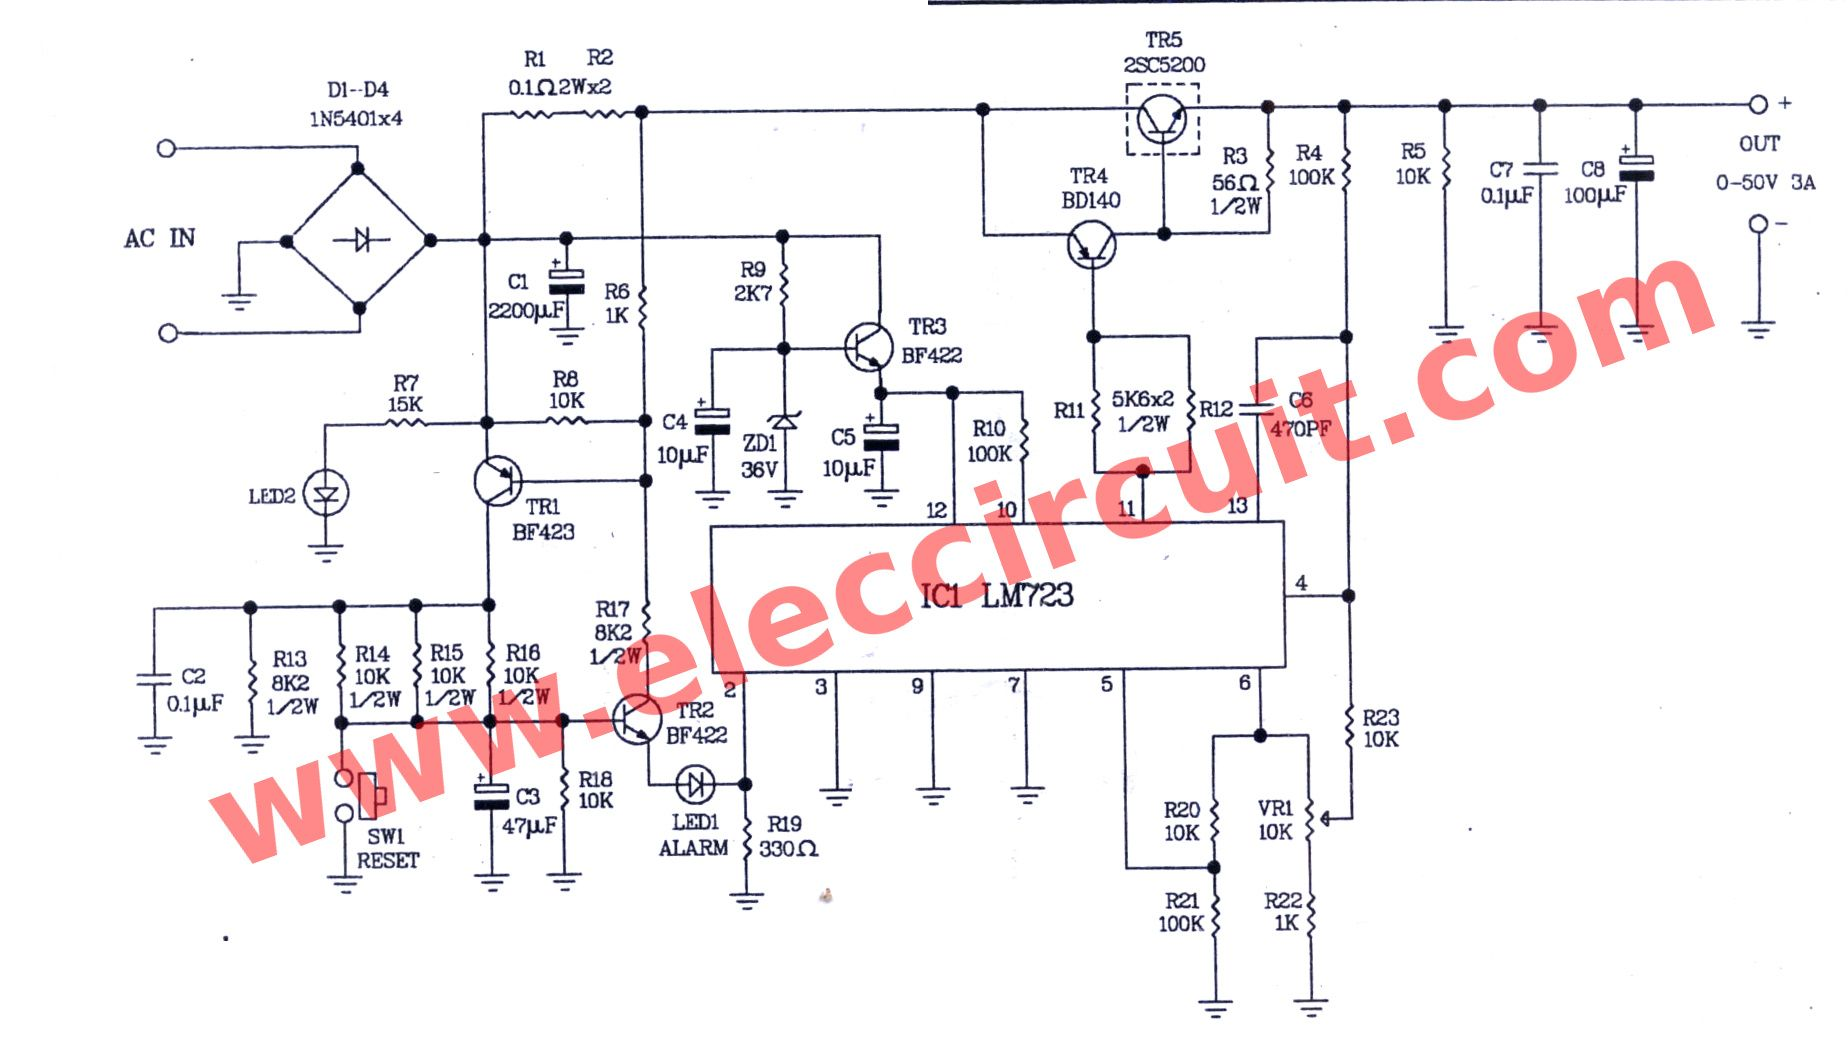 small resolution of this regulator is 0 50v variable power supply circuit 3a that adjust output voltage 0v to 50 volts and important is the overcurrent protection at 3 a